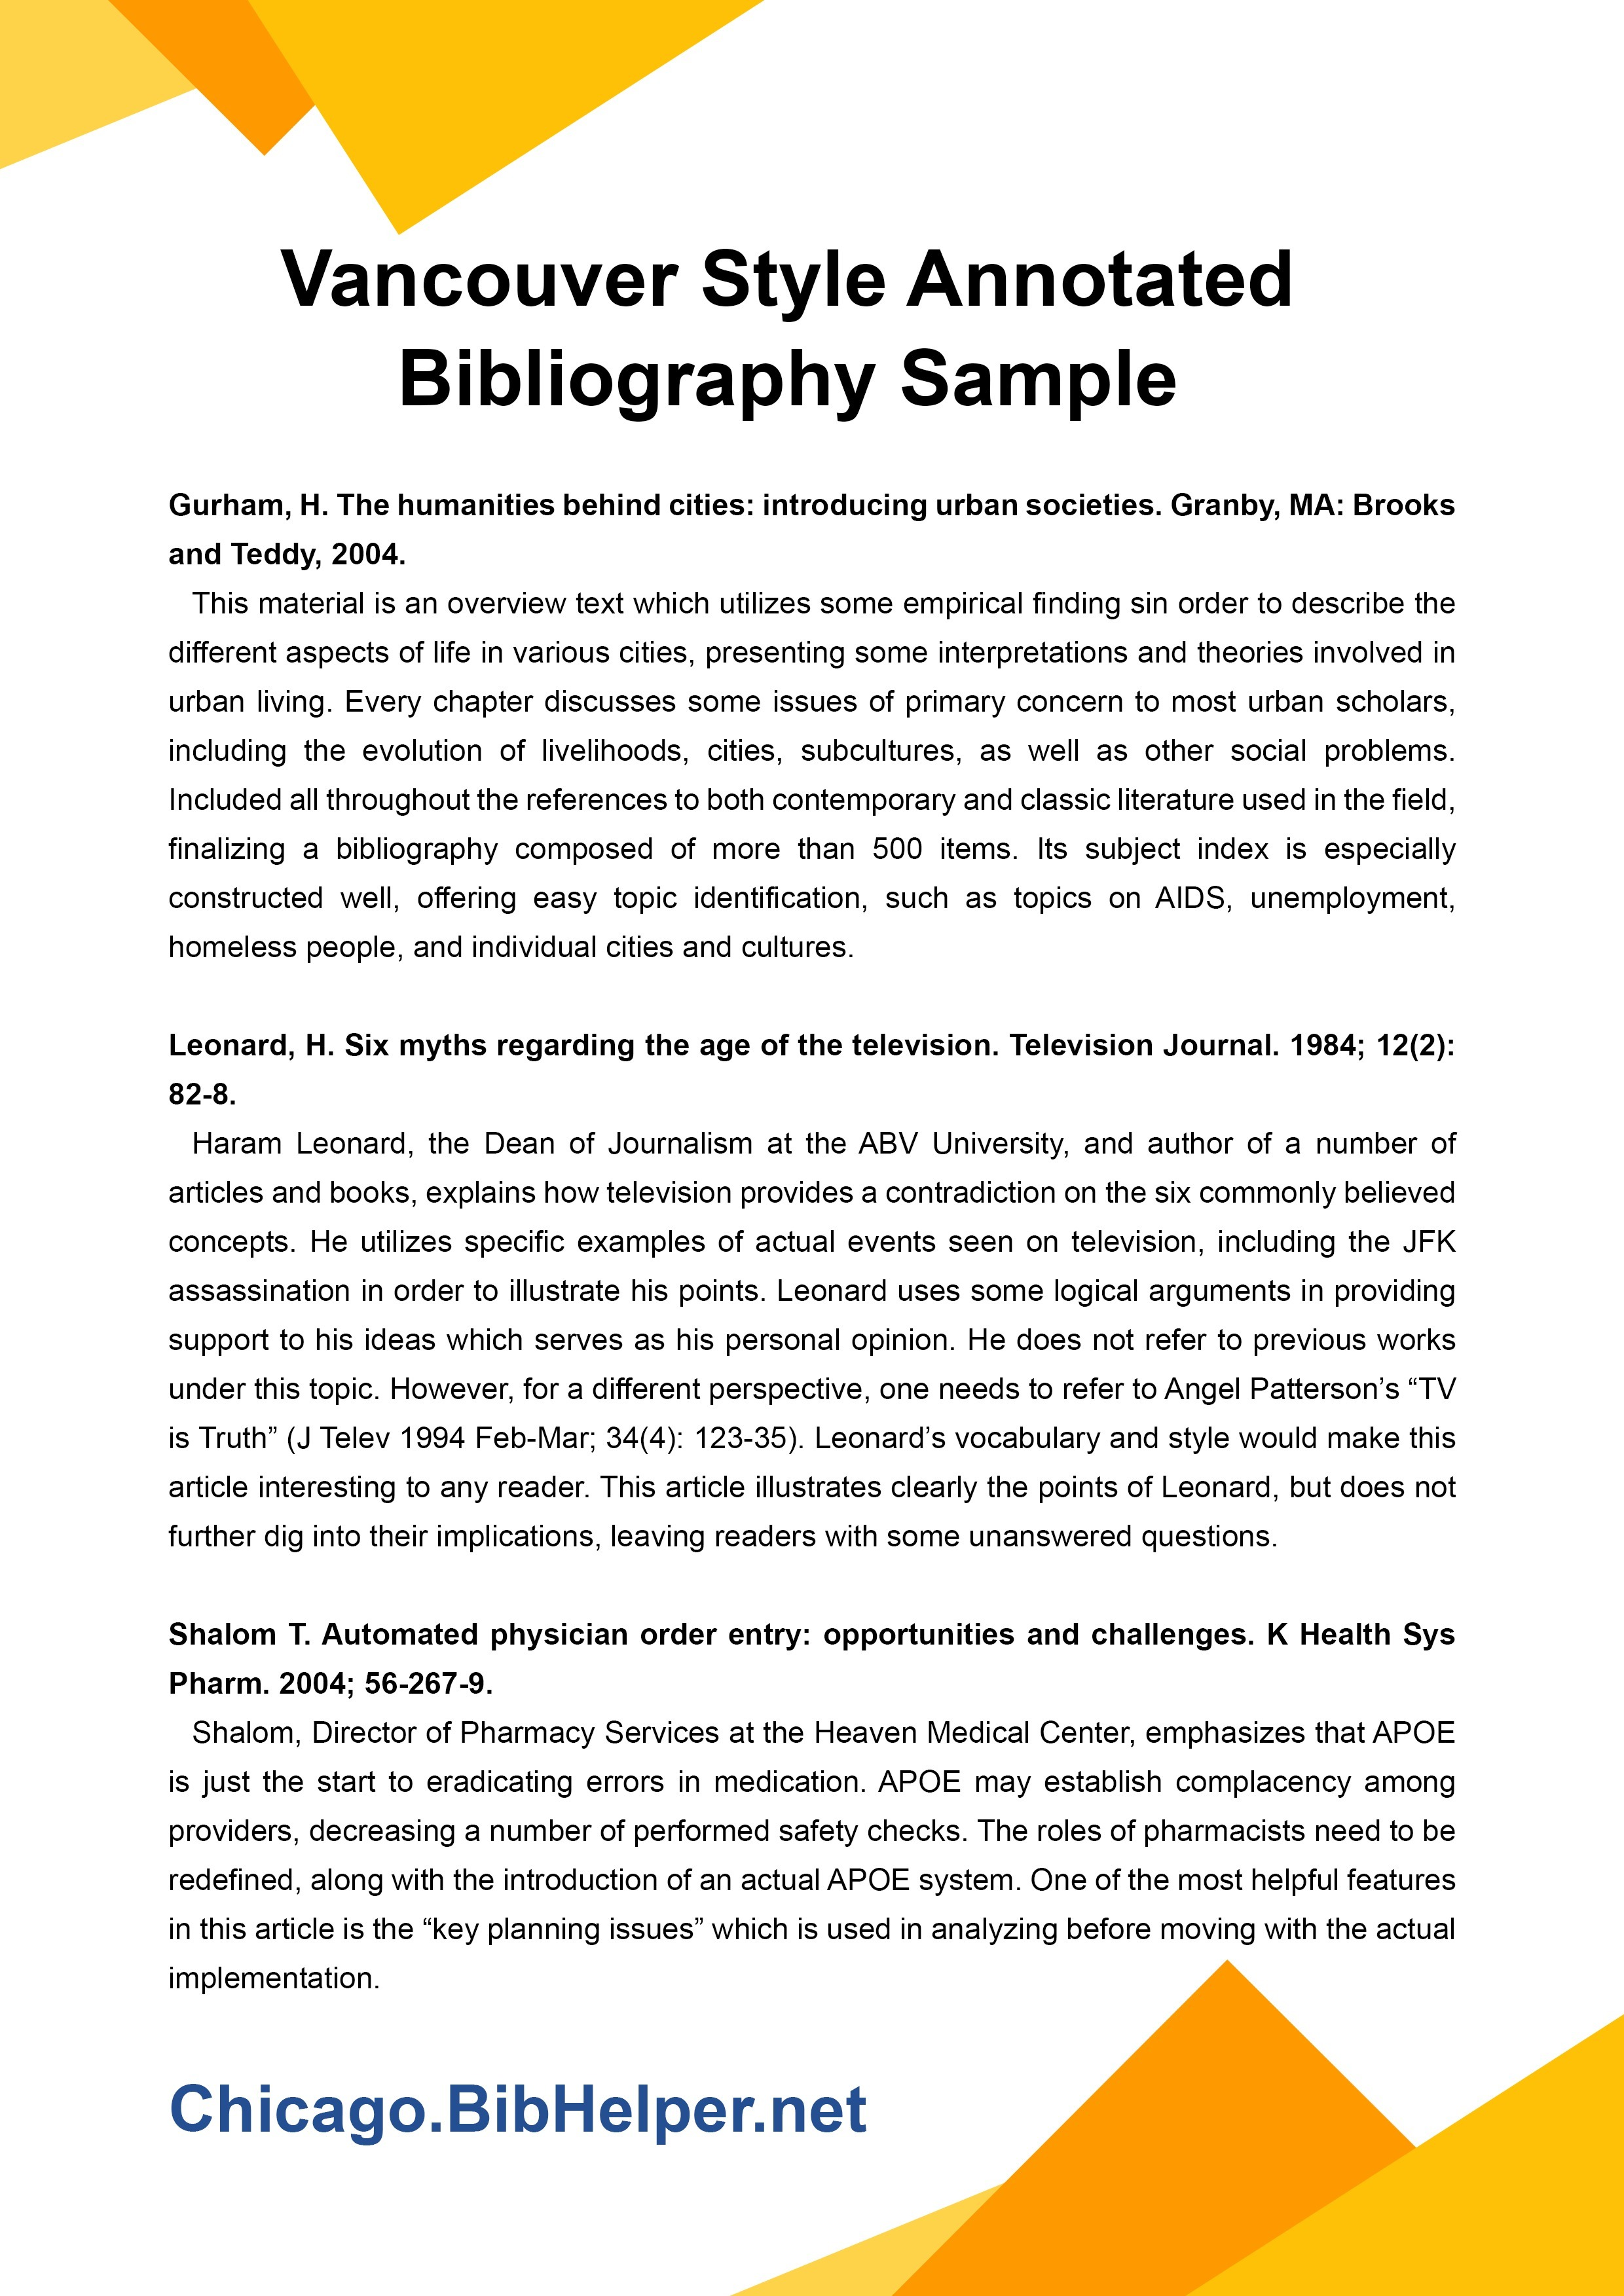 sample chicago style annotated bibliography